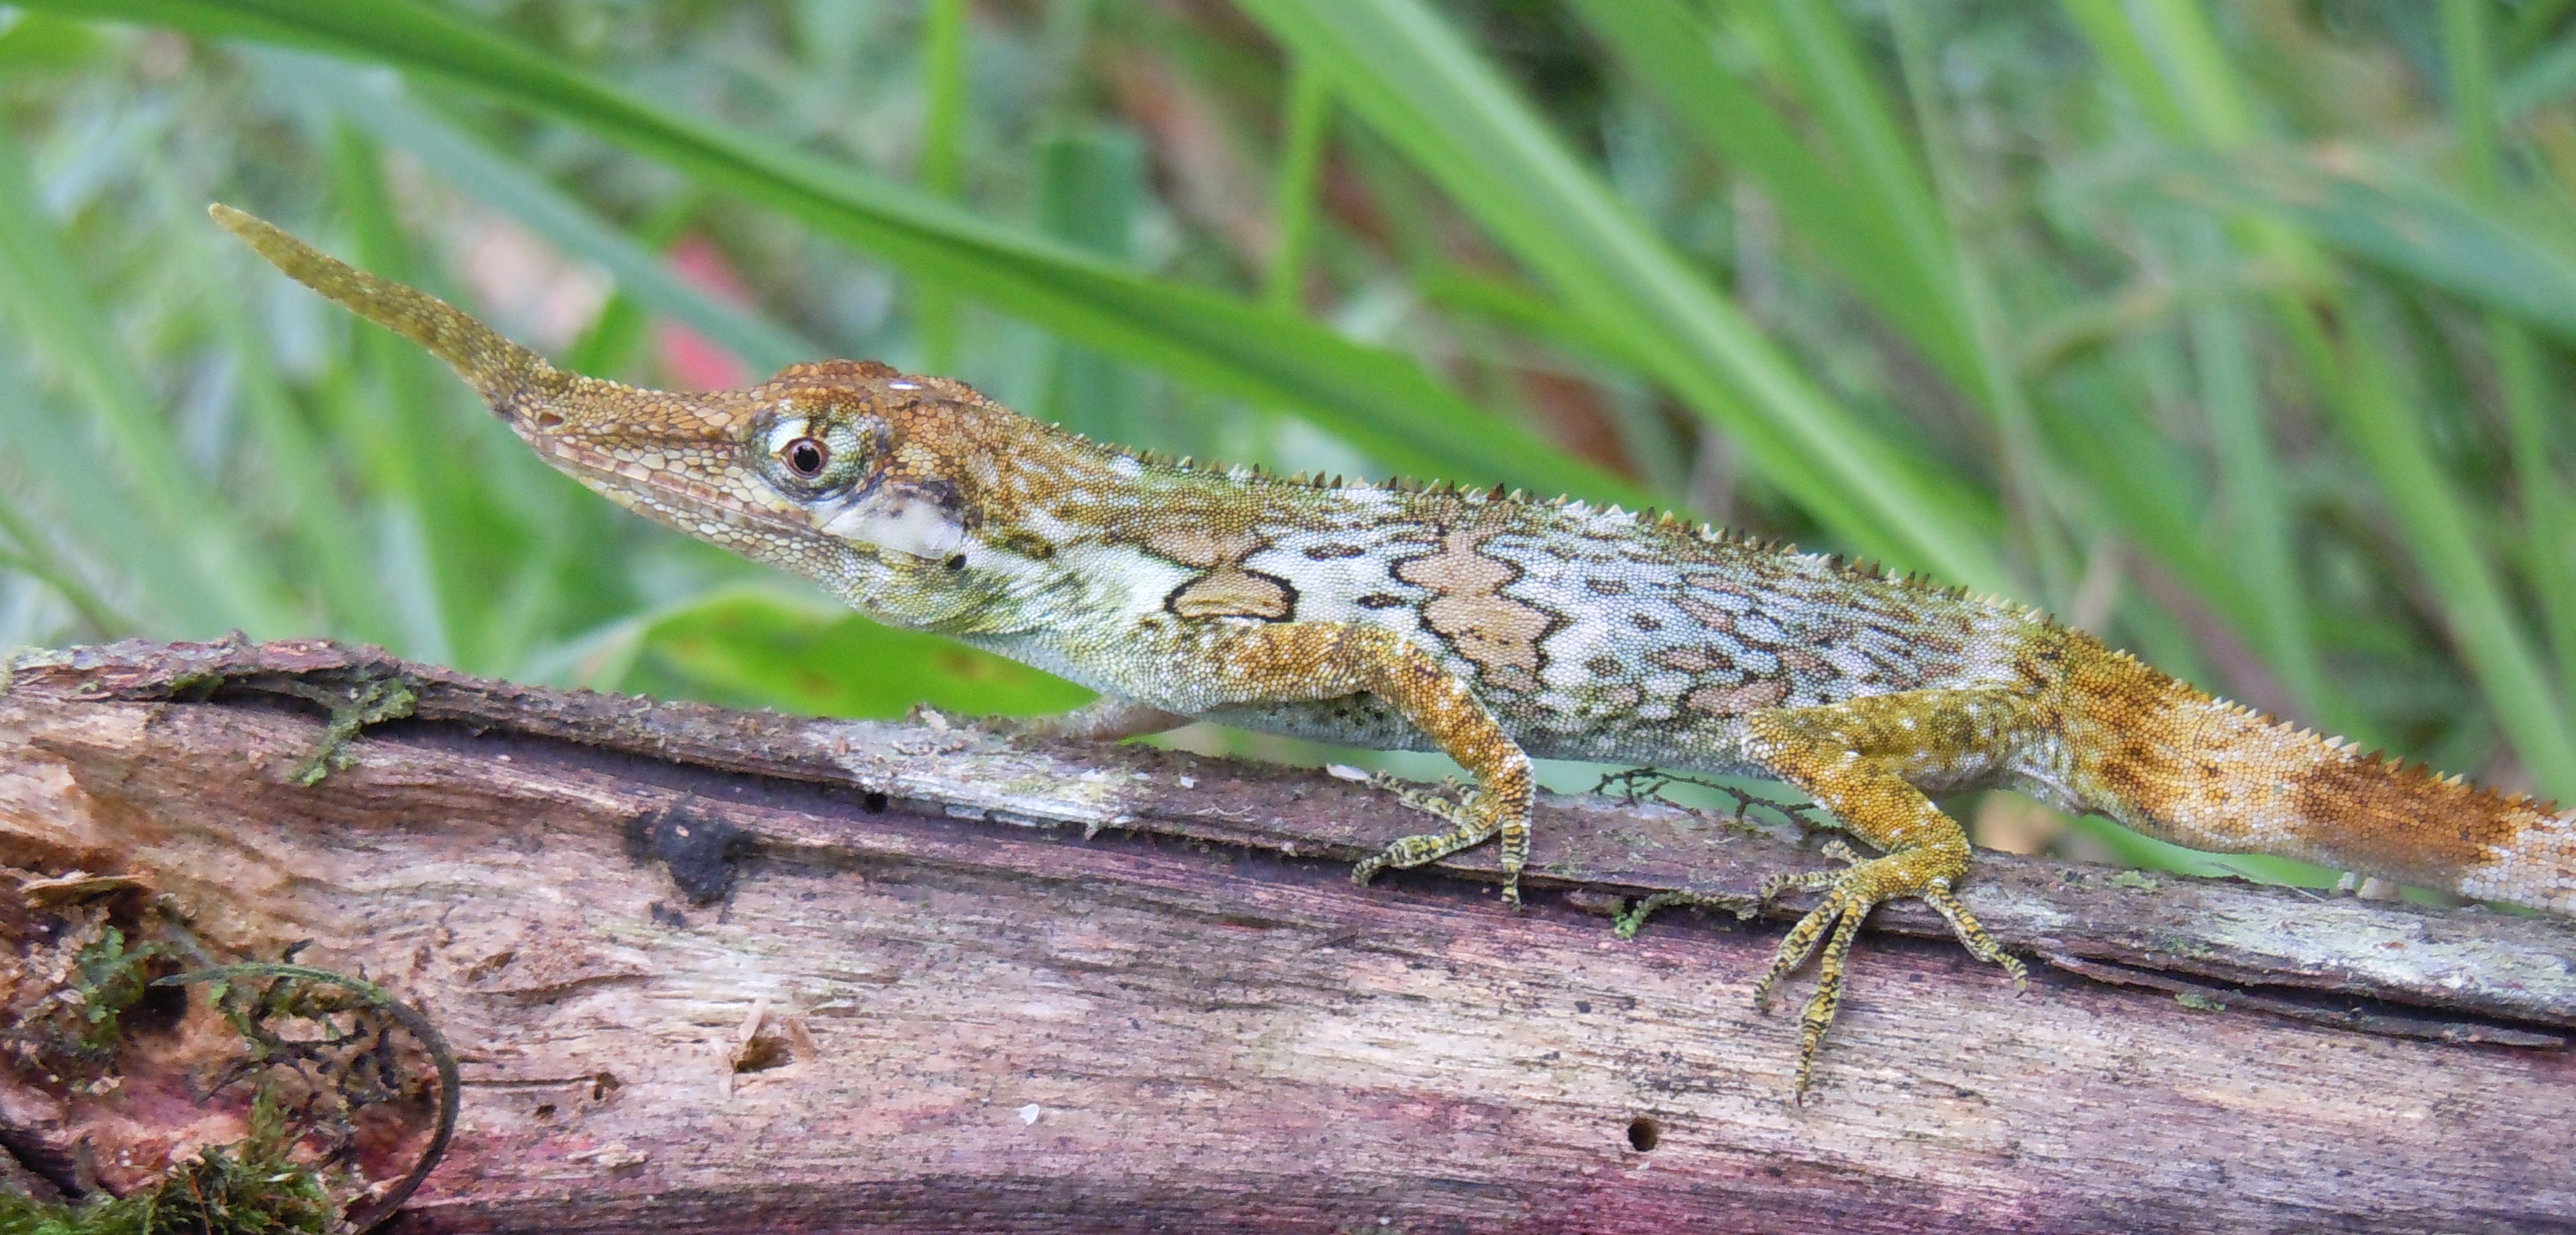 rediscovery of the enigmatic ecuadorian horned anole lizard